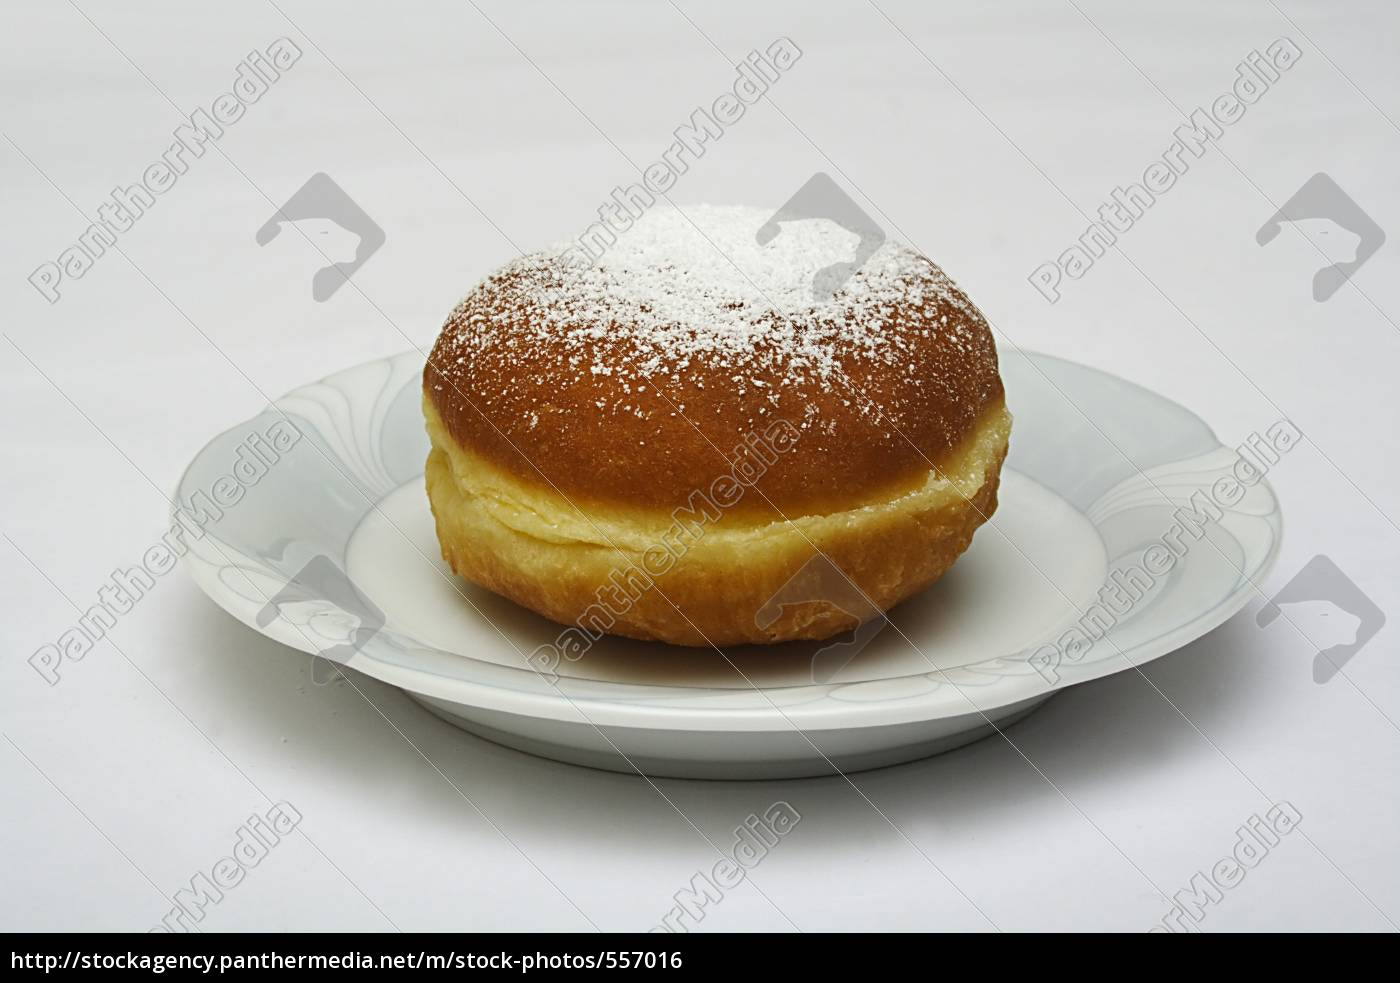 donuts, served - 557016